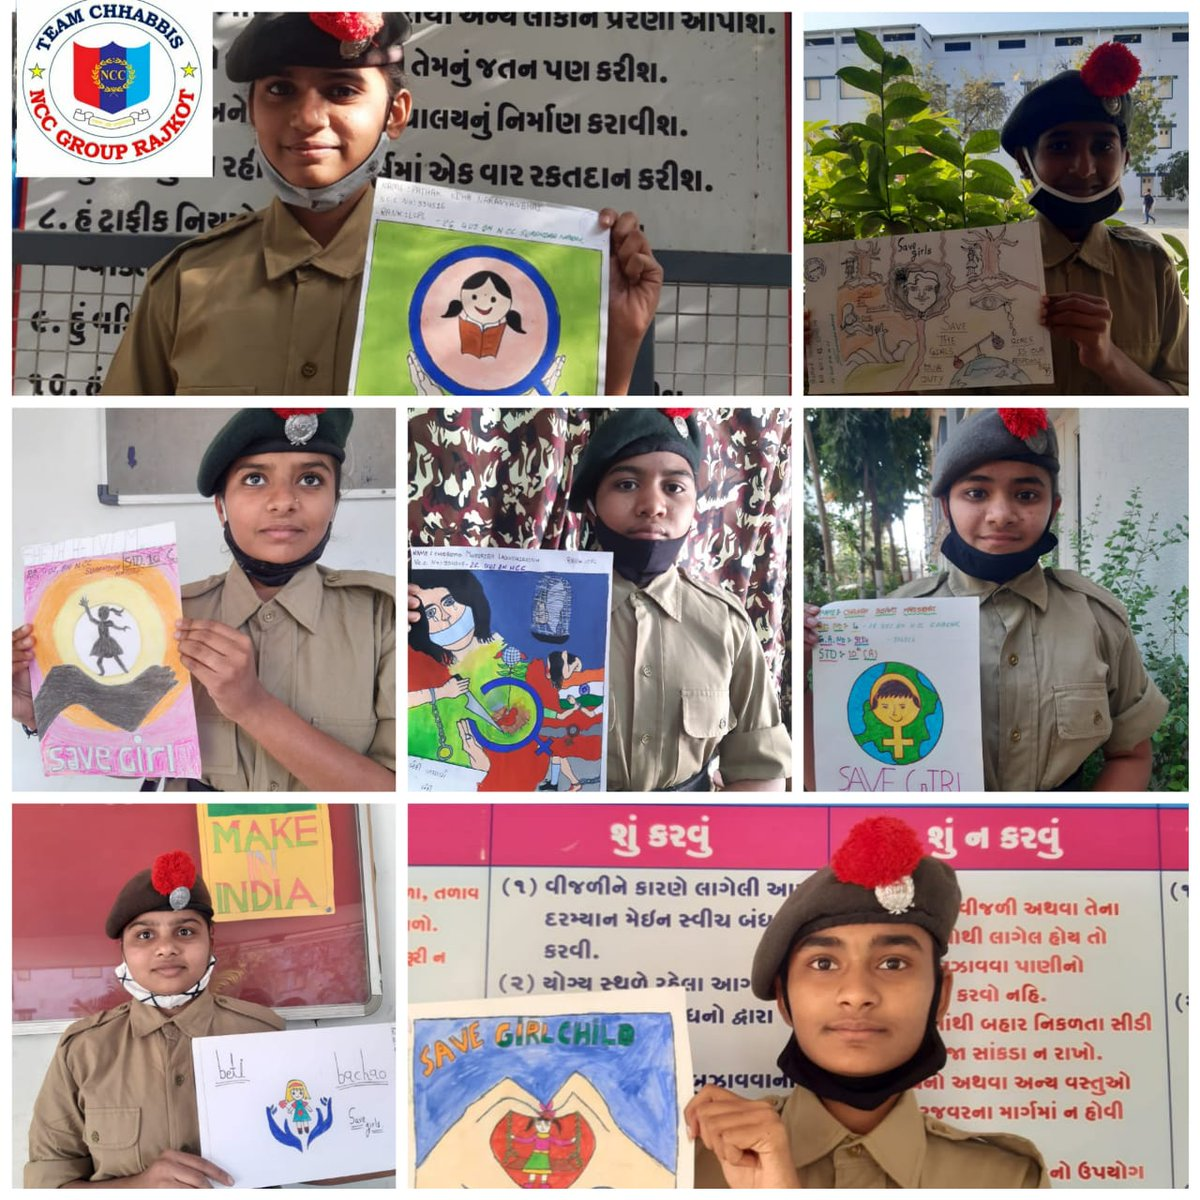 #NationalCadetCorps #Gujarat  #Equality JW Cdts of #26GujBn fm KP Girls High School #Wadhwan participated in  poster making  organized by SO Reshma Joshi, ANO 2 celebrate  #NationalGirlChildDay2021 @SpokespersonMoD @HQ_DG_NCC @MunjaparaDr @PIBAhmedabad @Info_Srn @smritiirani